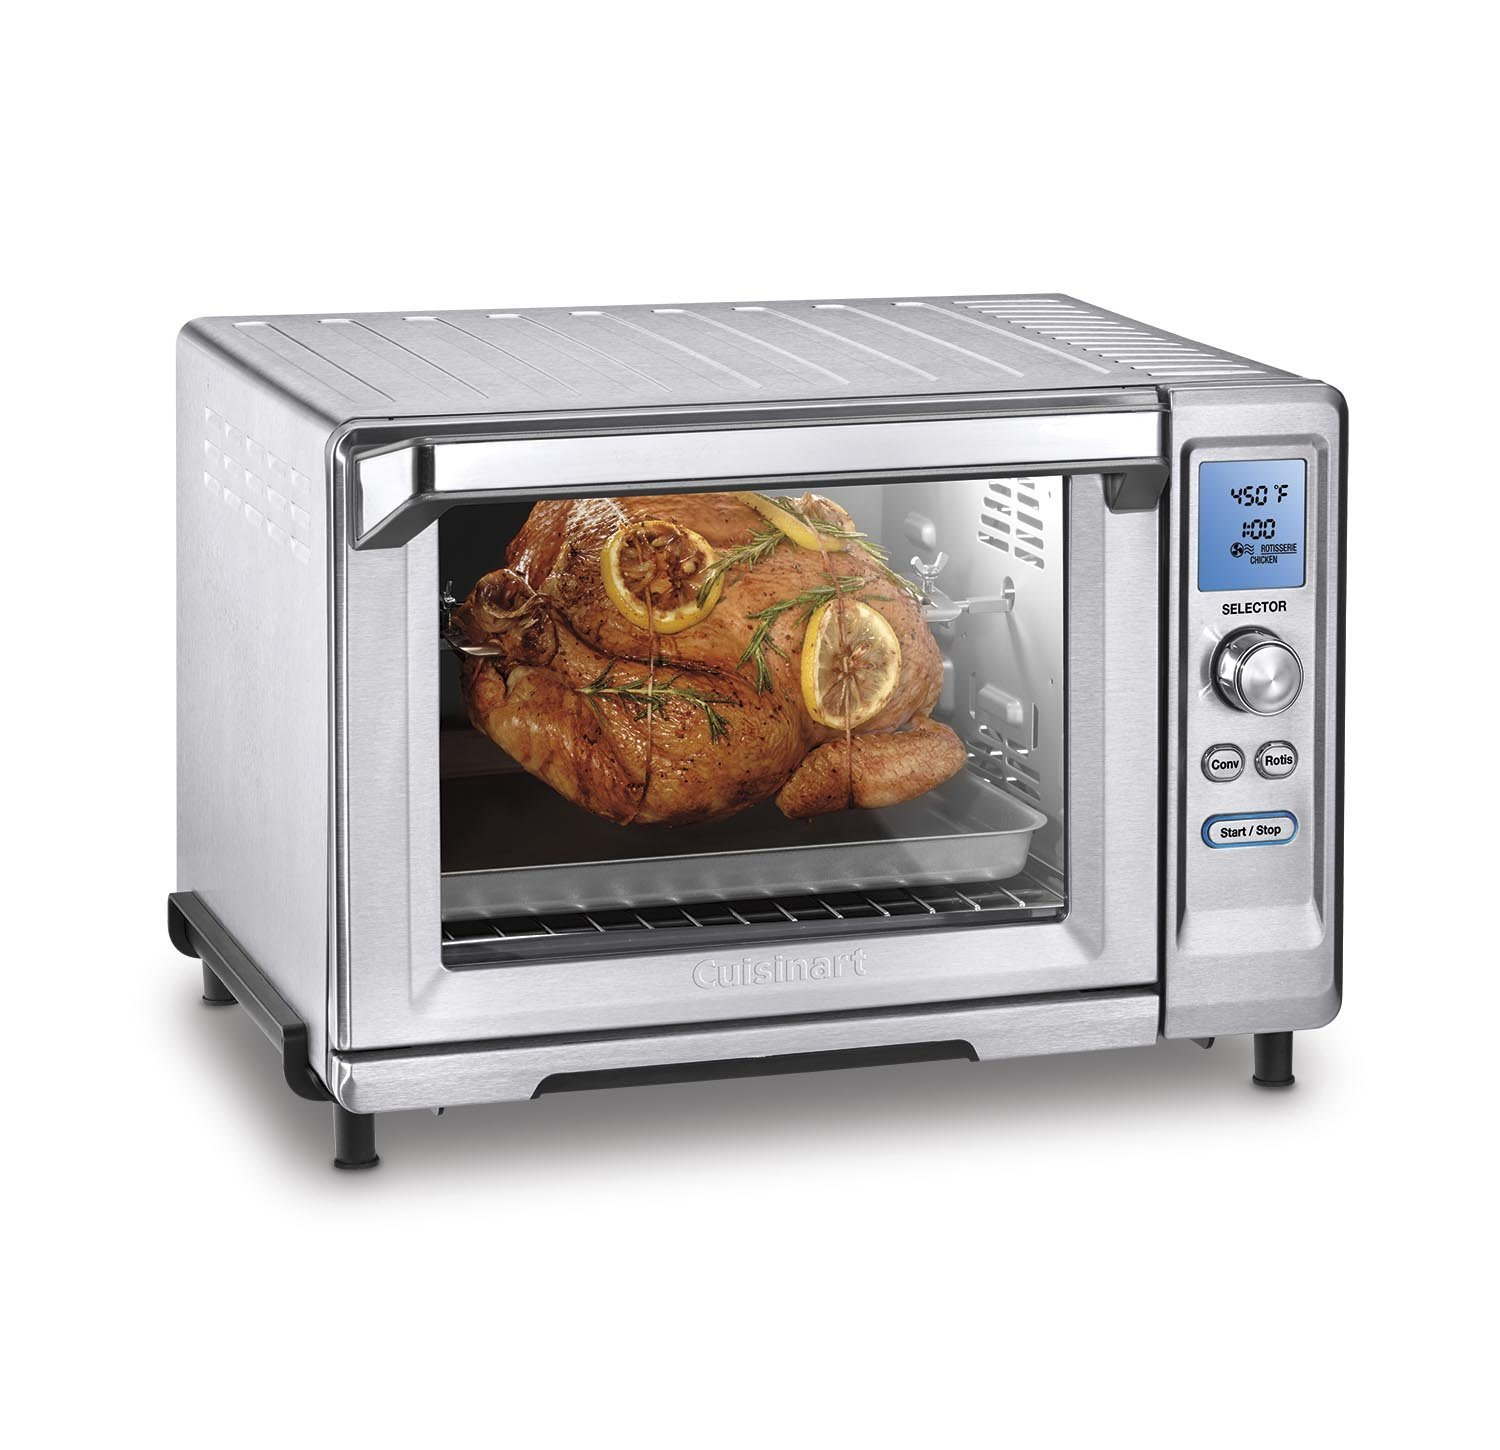 Cuisinart Rotisserie Convection Toaster Oven